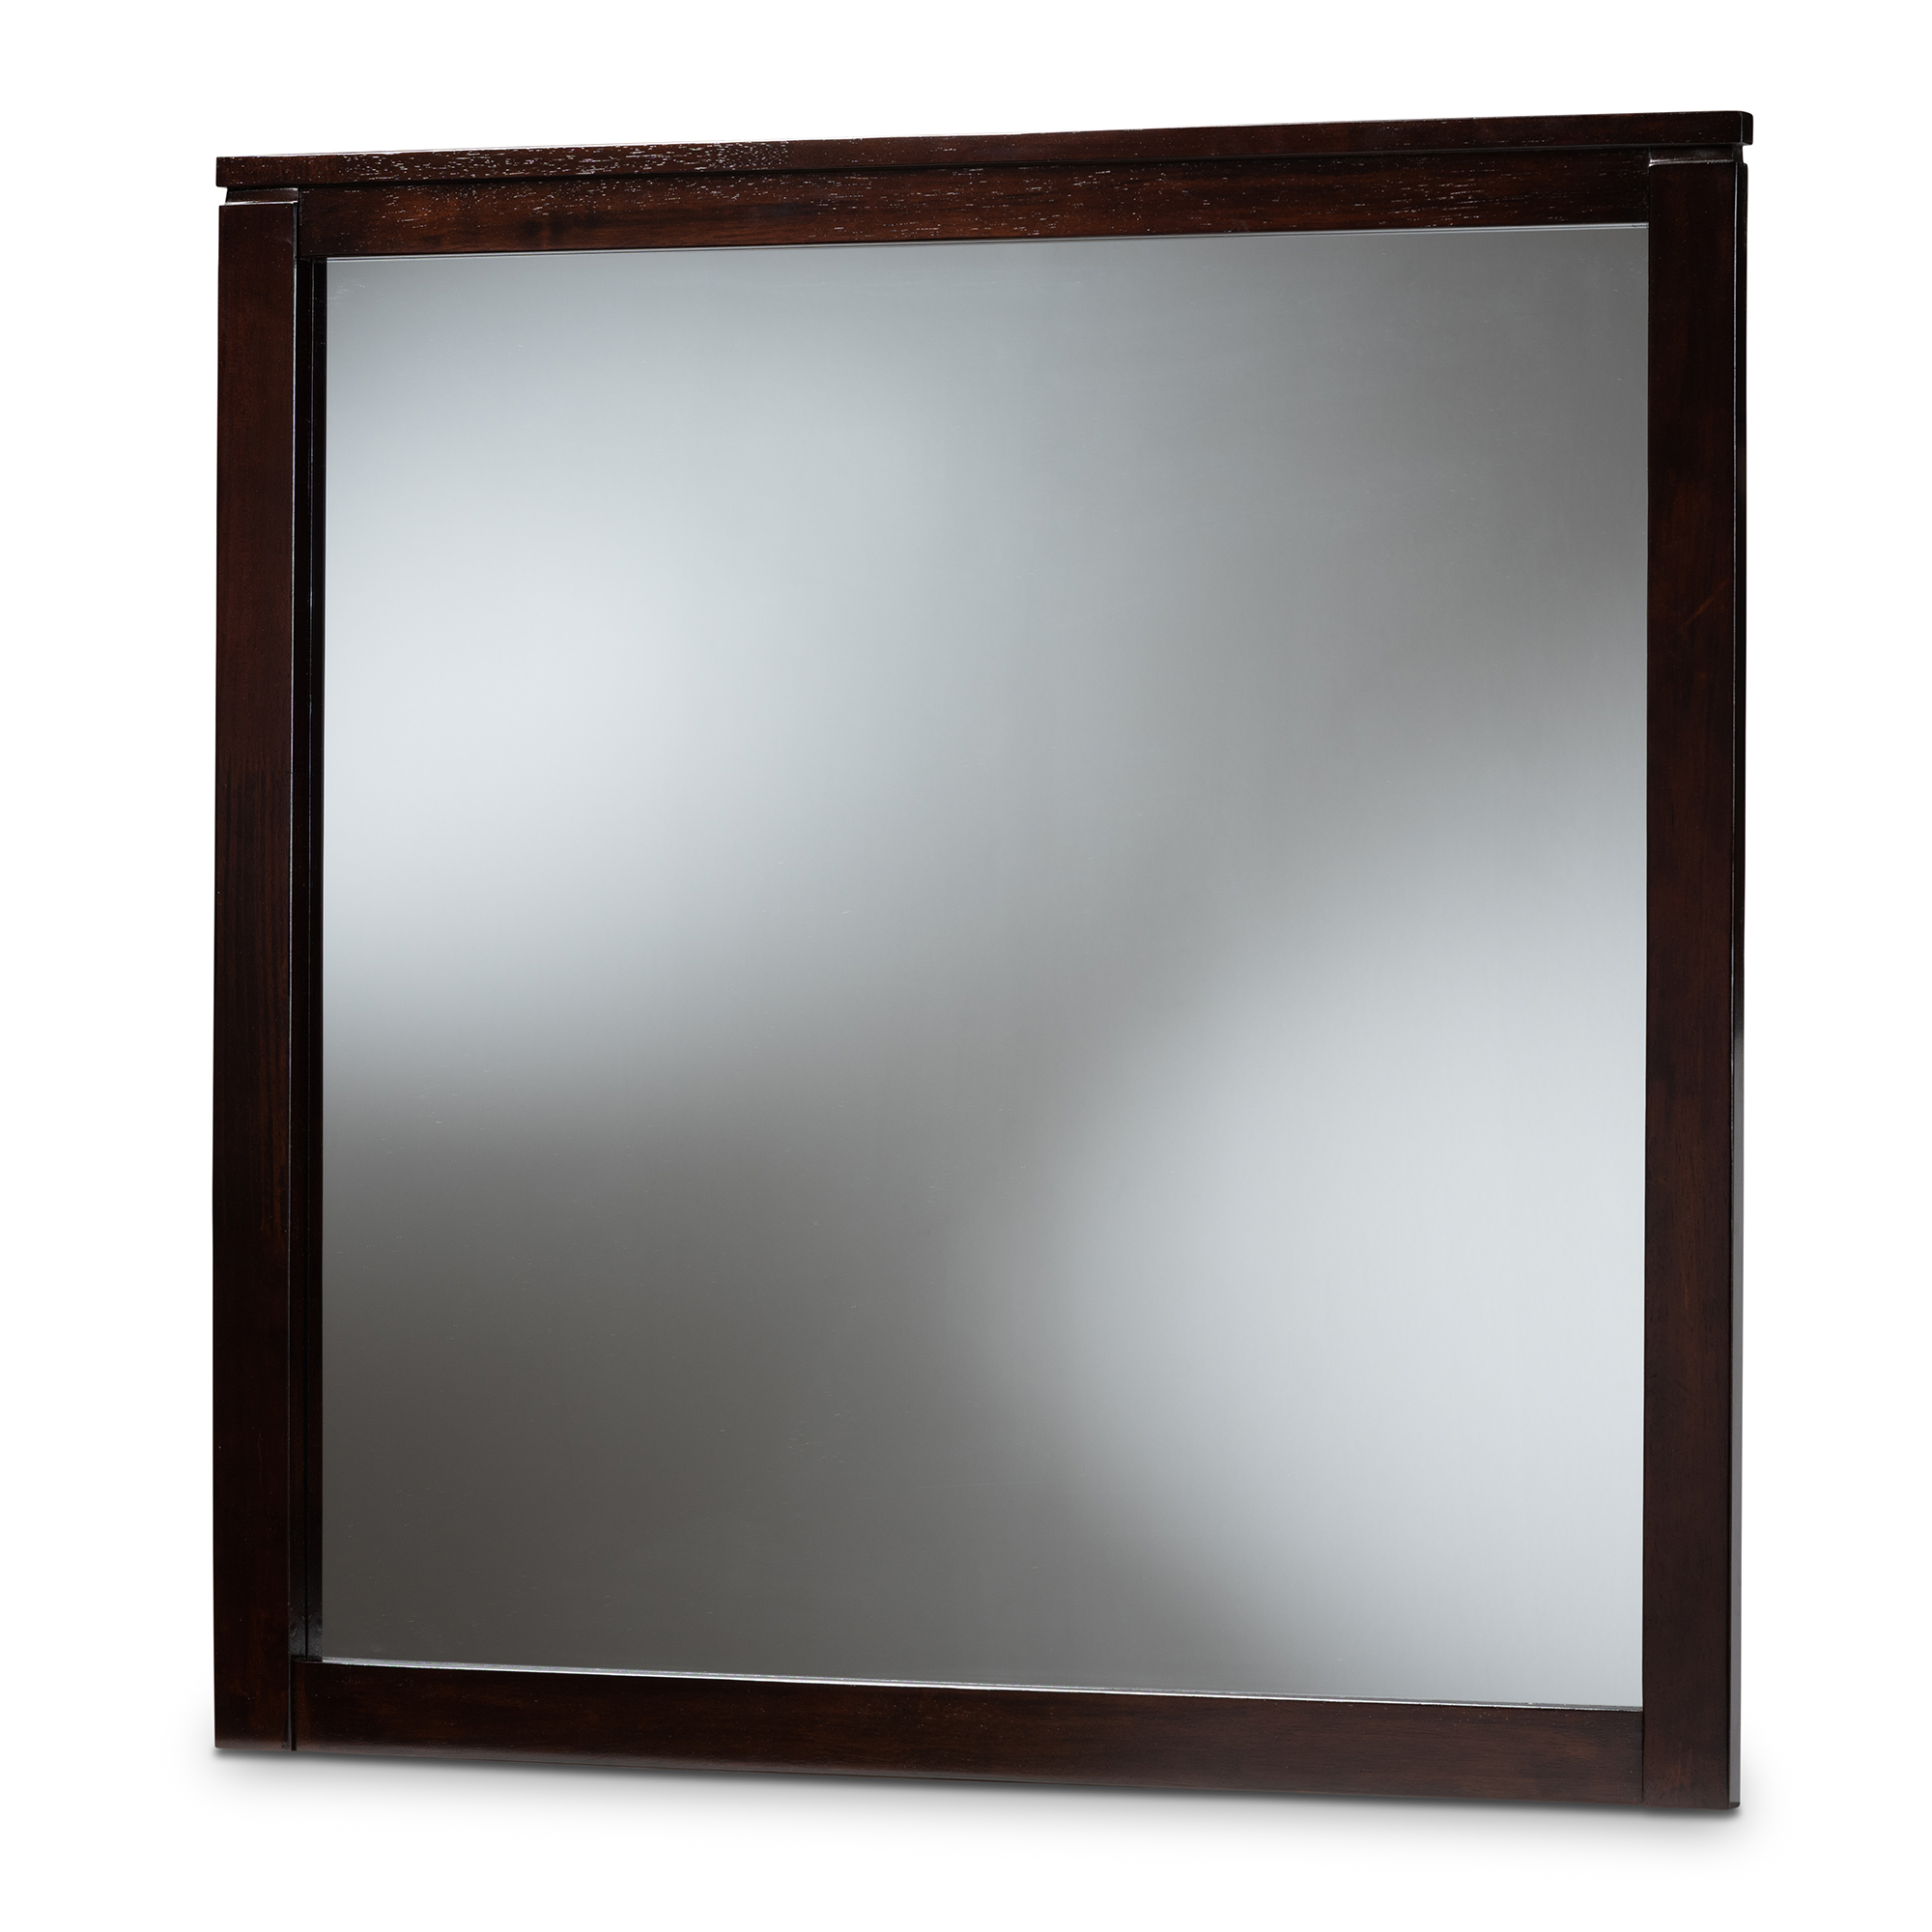 Baxton Studio Eaton Modern And Contemporary Dark Brown Finished Wood Dresser Mirror